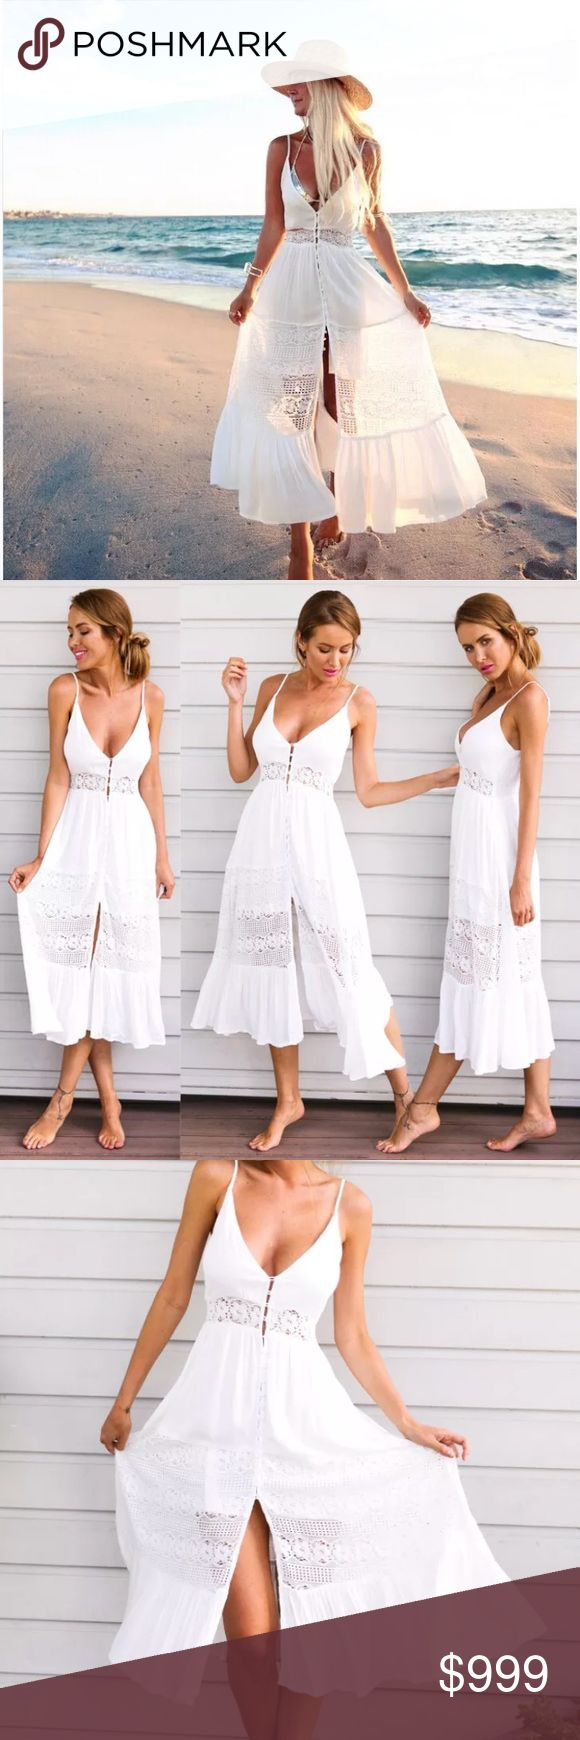 🌟P R E V I E W🌟La Bonita White Maxi Dress 🌟ARRIVING IN MARCH🌟  •Brand new unbranded boutique item •Like this listing and will tag you once the item arrives, price will be lowered •Comment with size if you want one, limited inventory •Measurements available once the item gets here •If you cannot figure out your size let me know your measurements and will tell you if it will fit or not •The way it looks on the model does not mean it will look the same on you, please keep that in mind  ©…